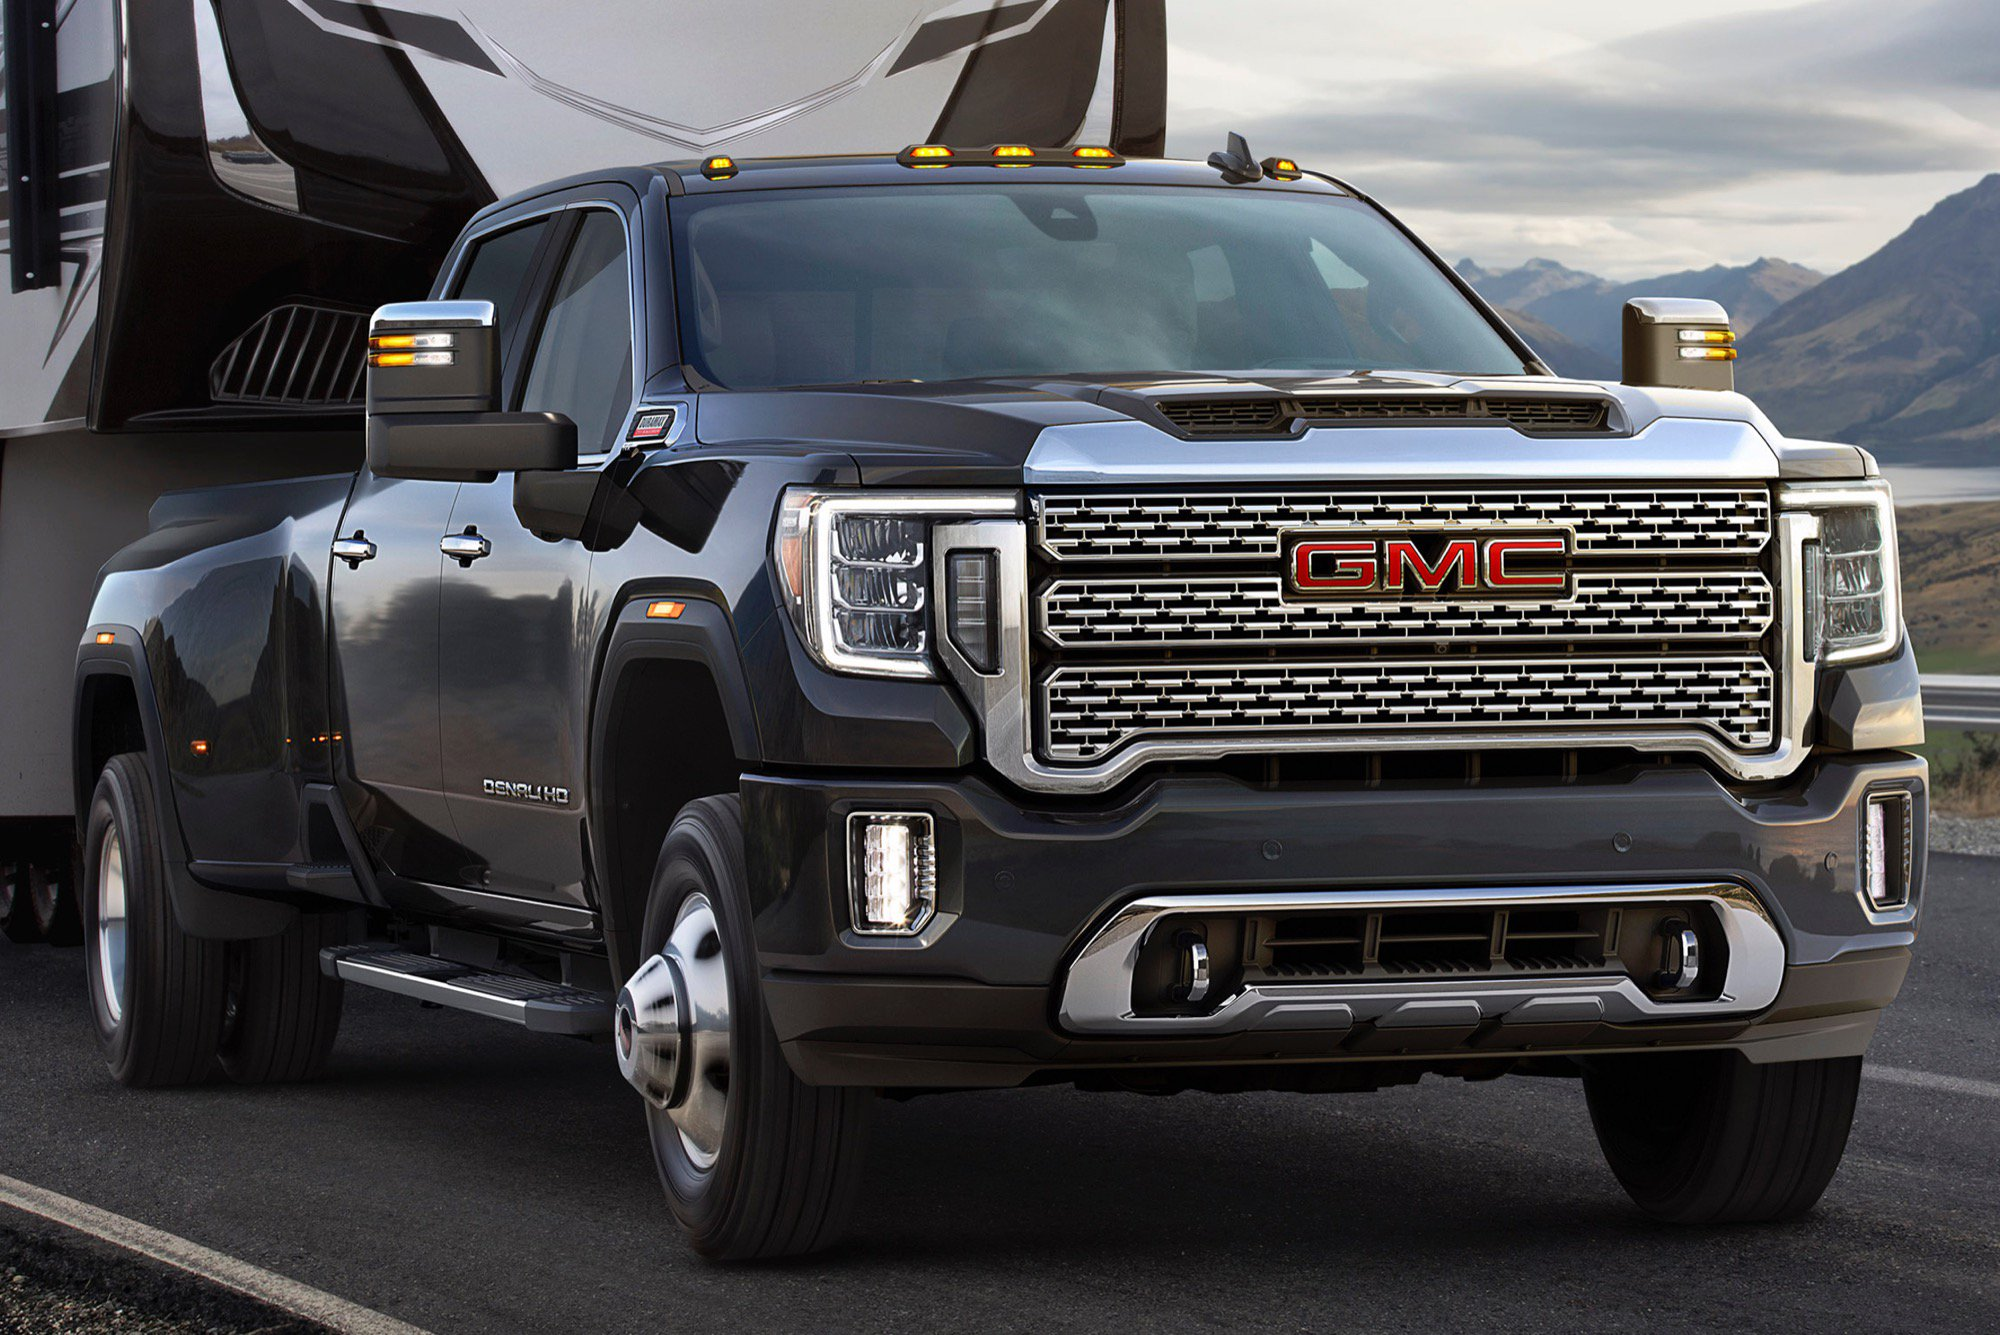 65 The 2020 GMC Sierra Price